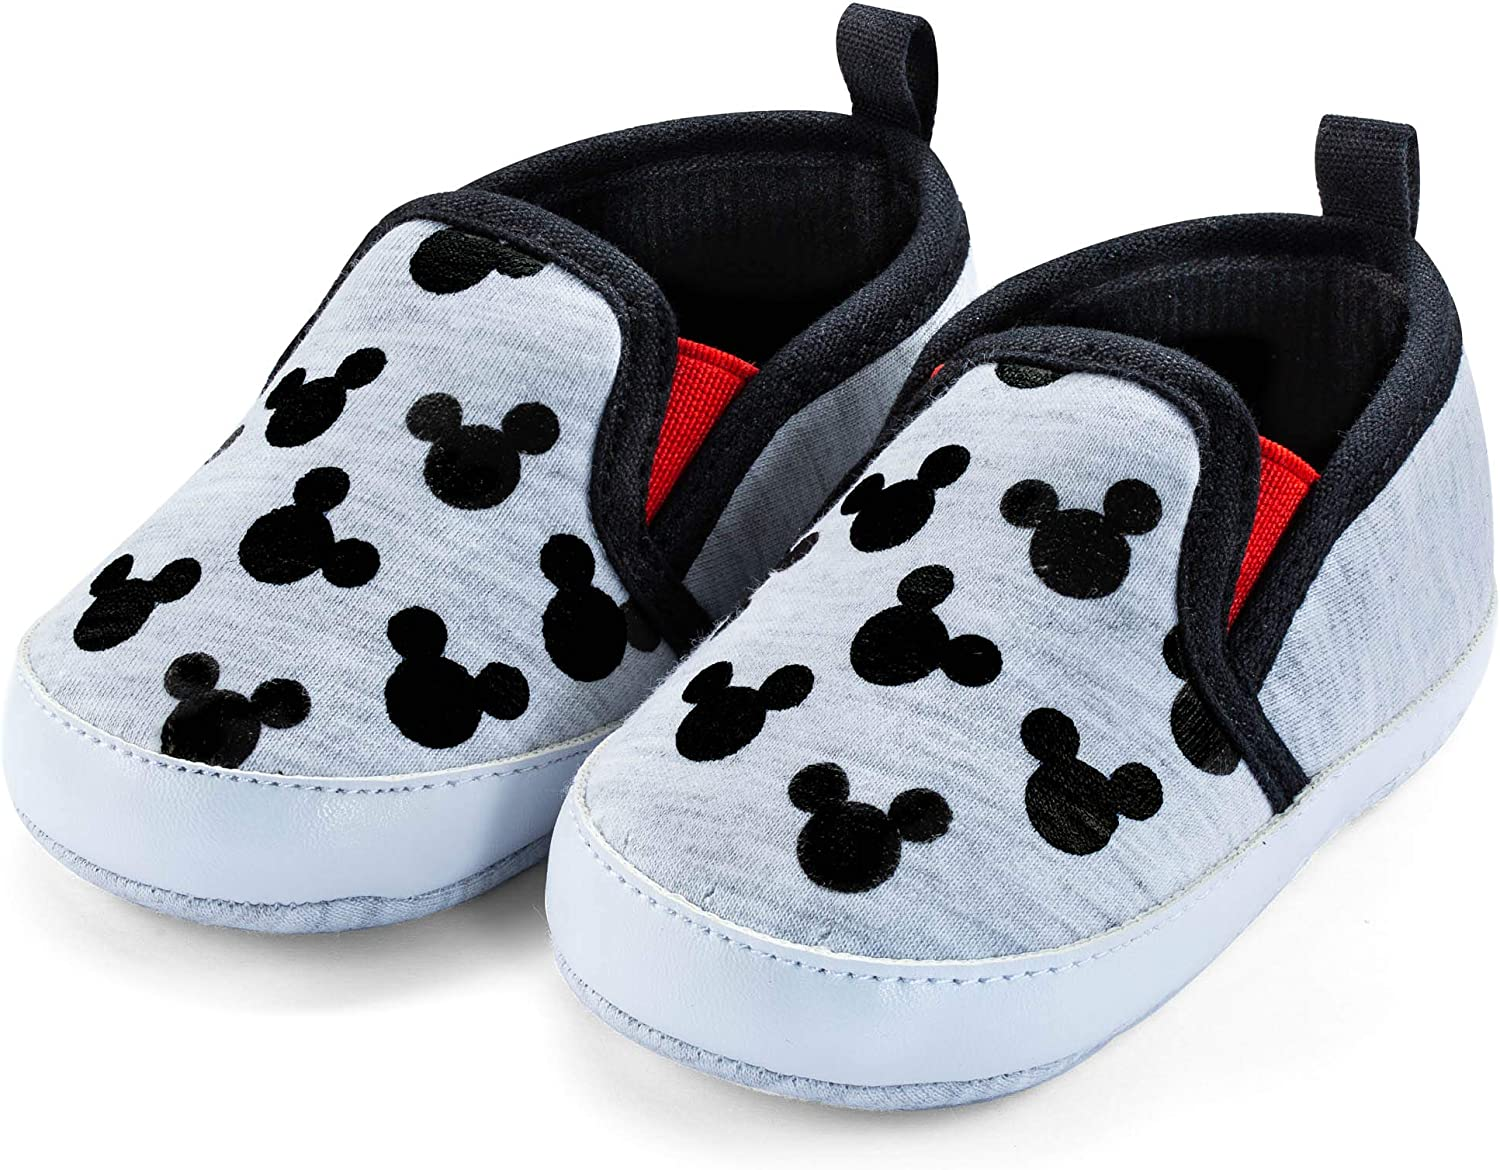 Disney Mickey Mouse Red and Black Infant Shoes